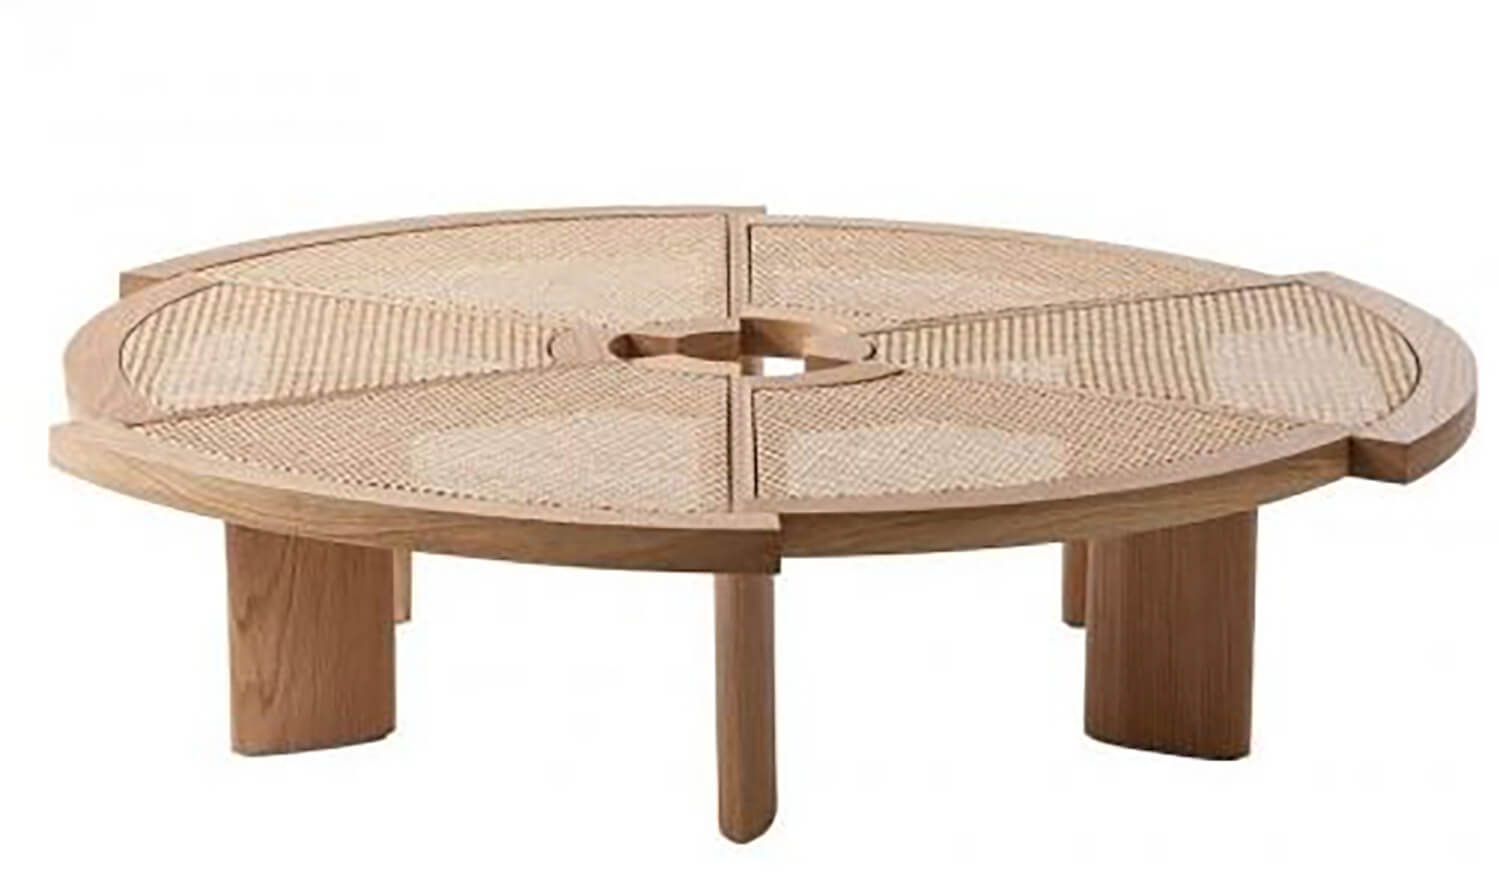 6 Est Living Wickedly Wickered Cassina Rio Coffee Table by Charlotte Perriand